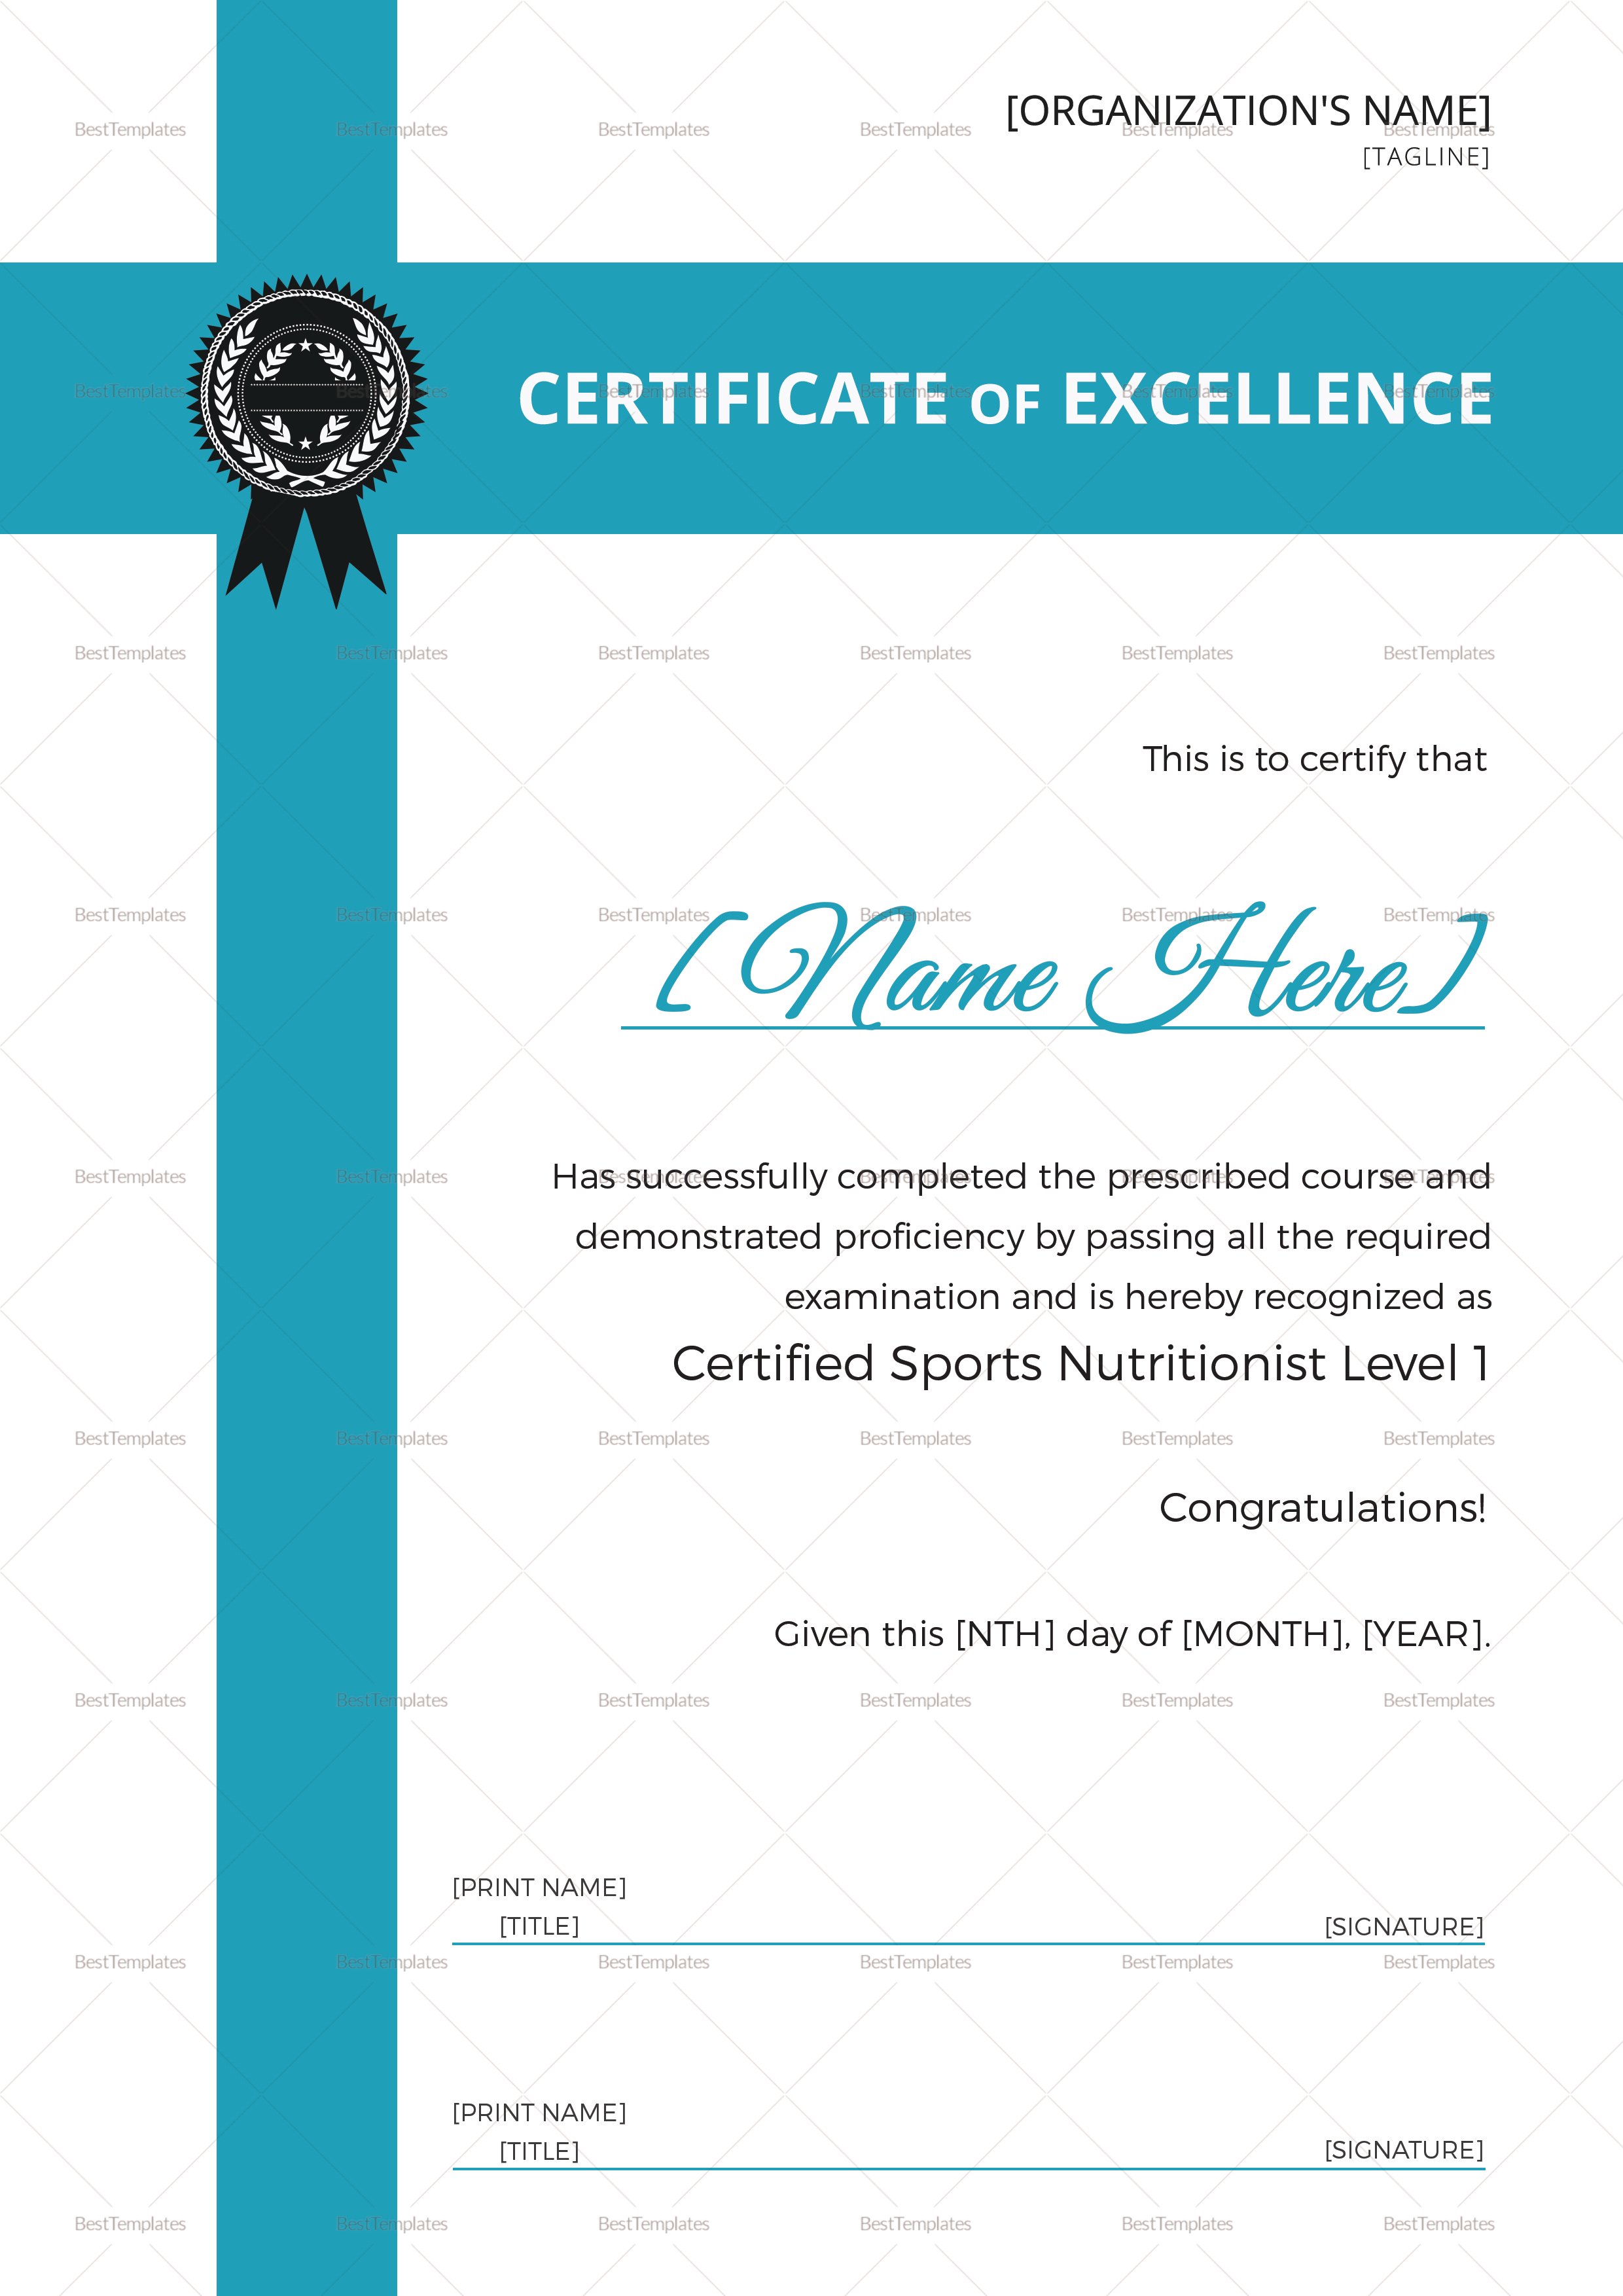 Sports Nutrition Training Certificate Template